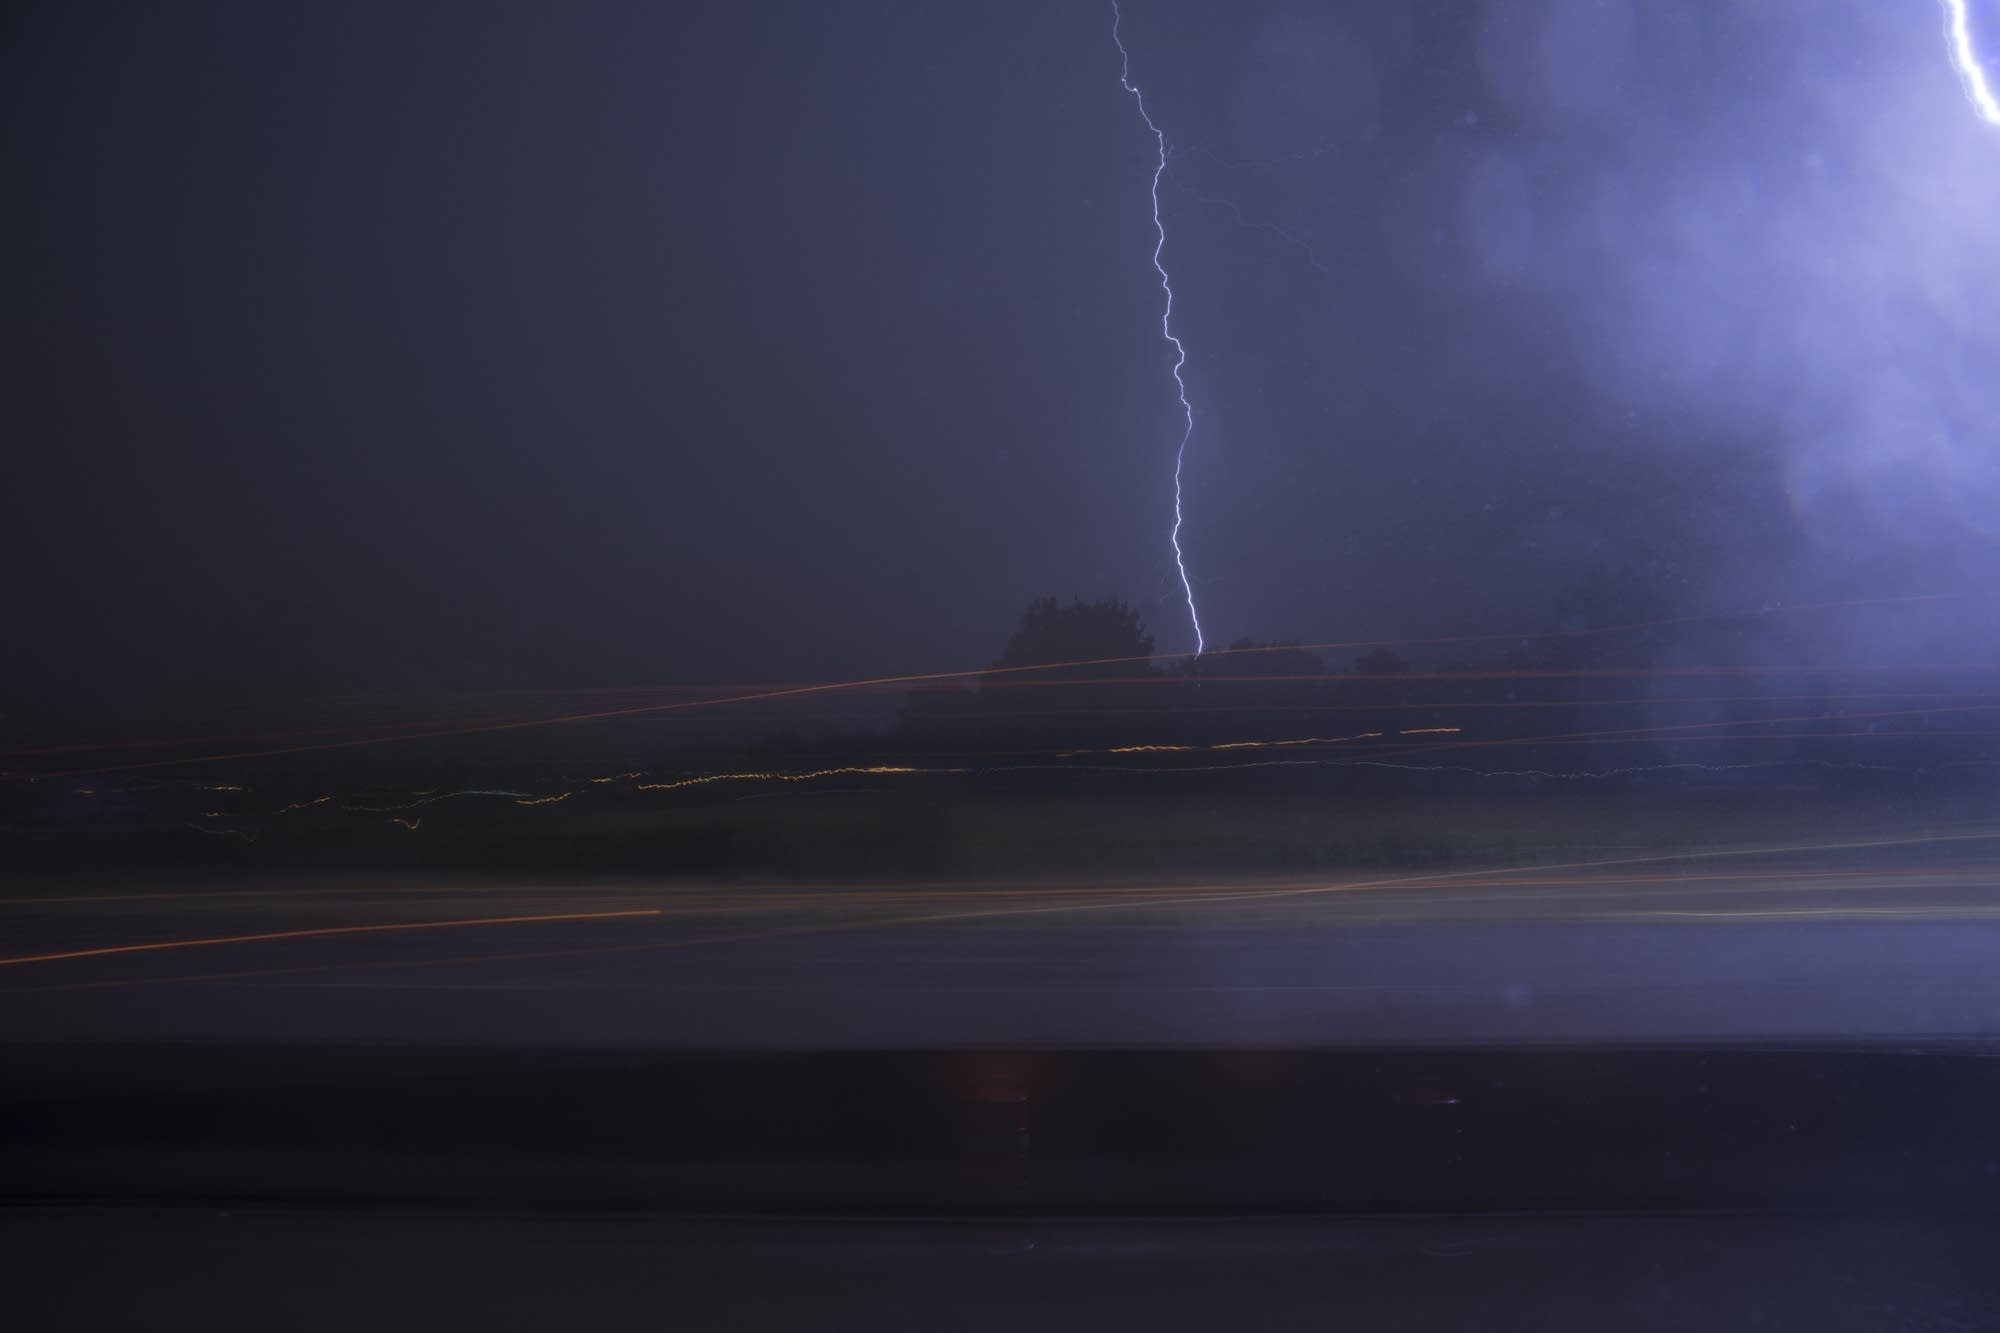 The group was awakened by lightning during the trip.